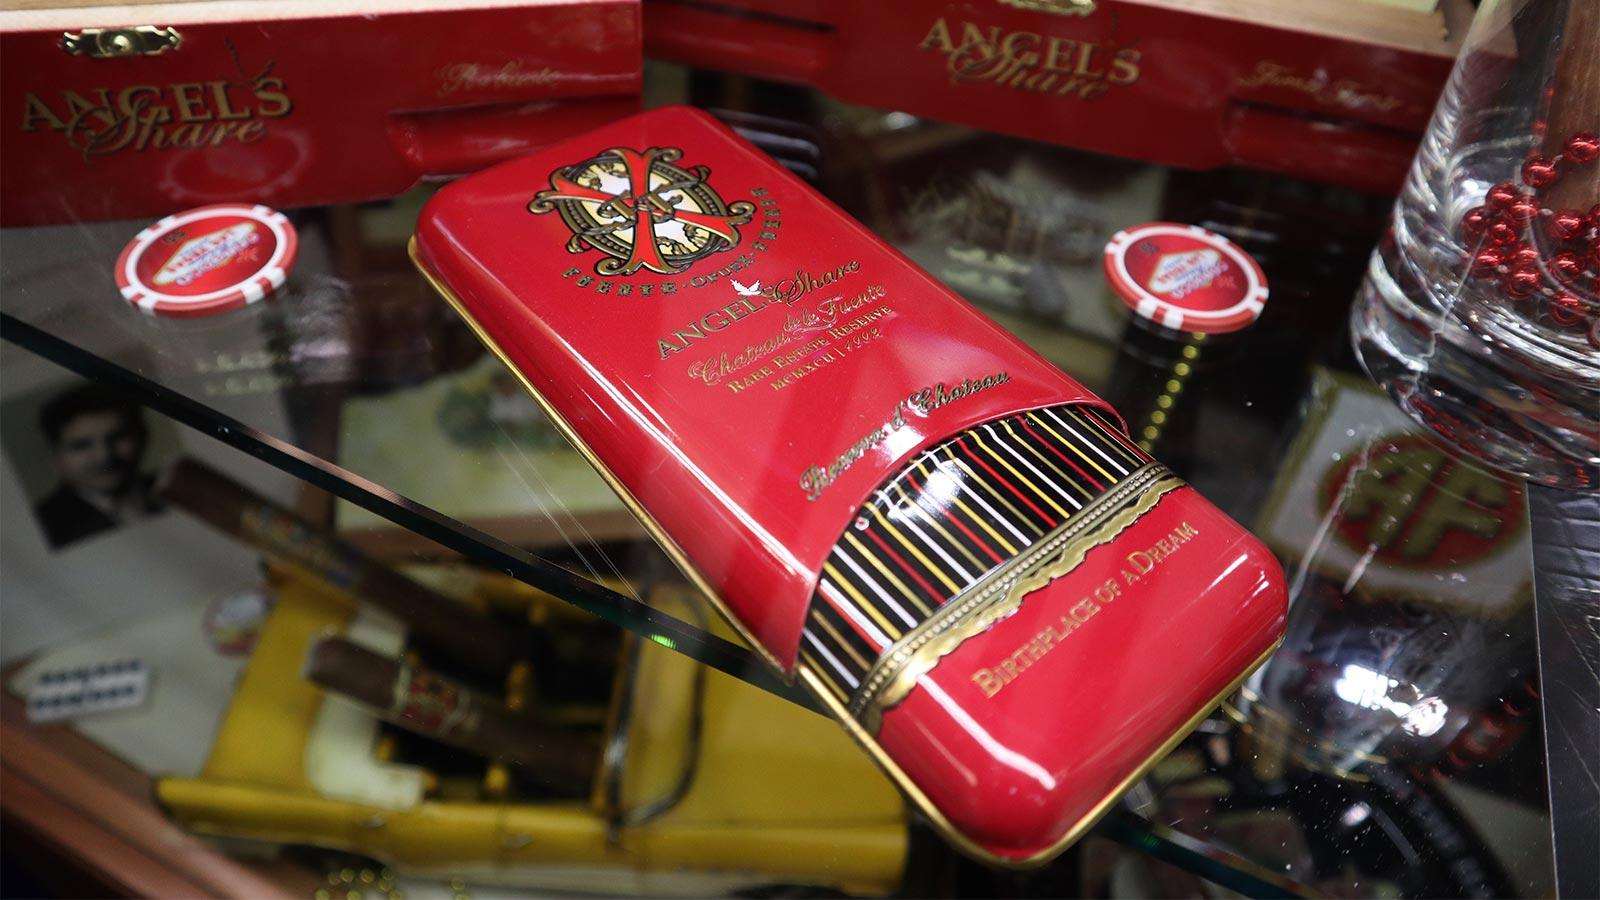 Fuente Fuente OpusX Angel's Share glossy tin